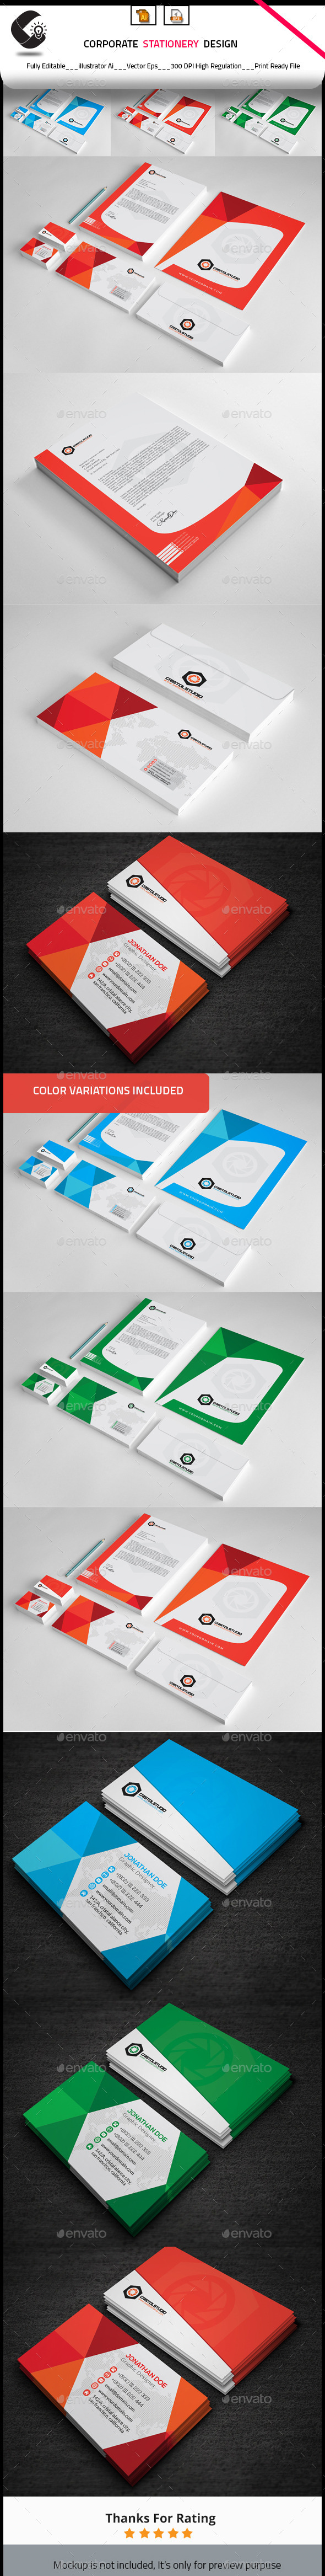 Corporate Stationery Design - Stationery Print Templates